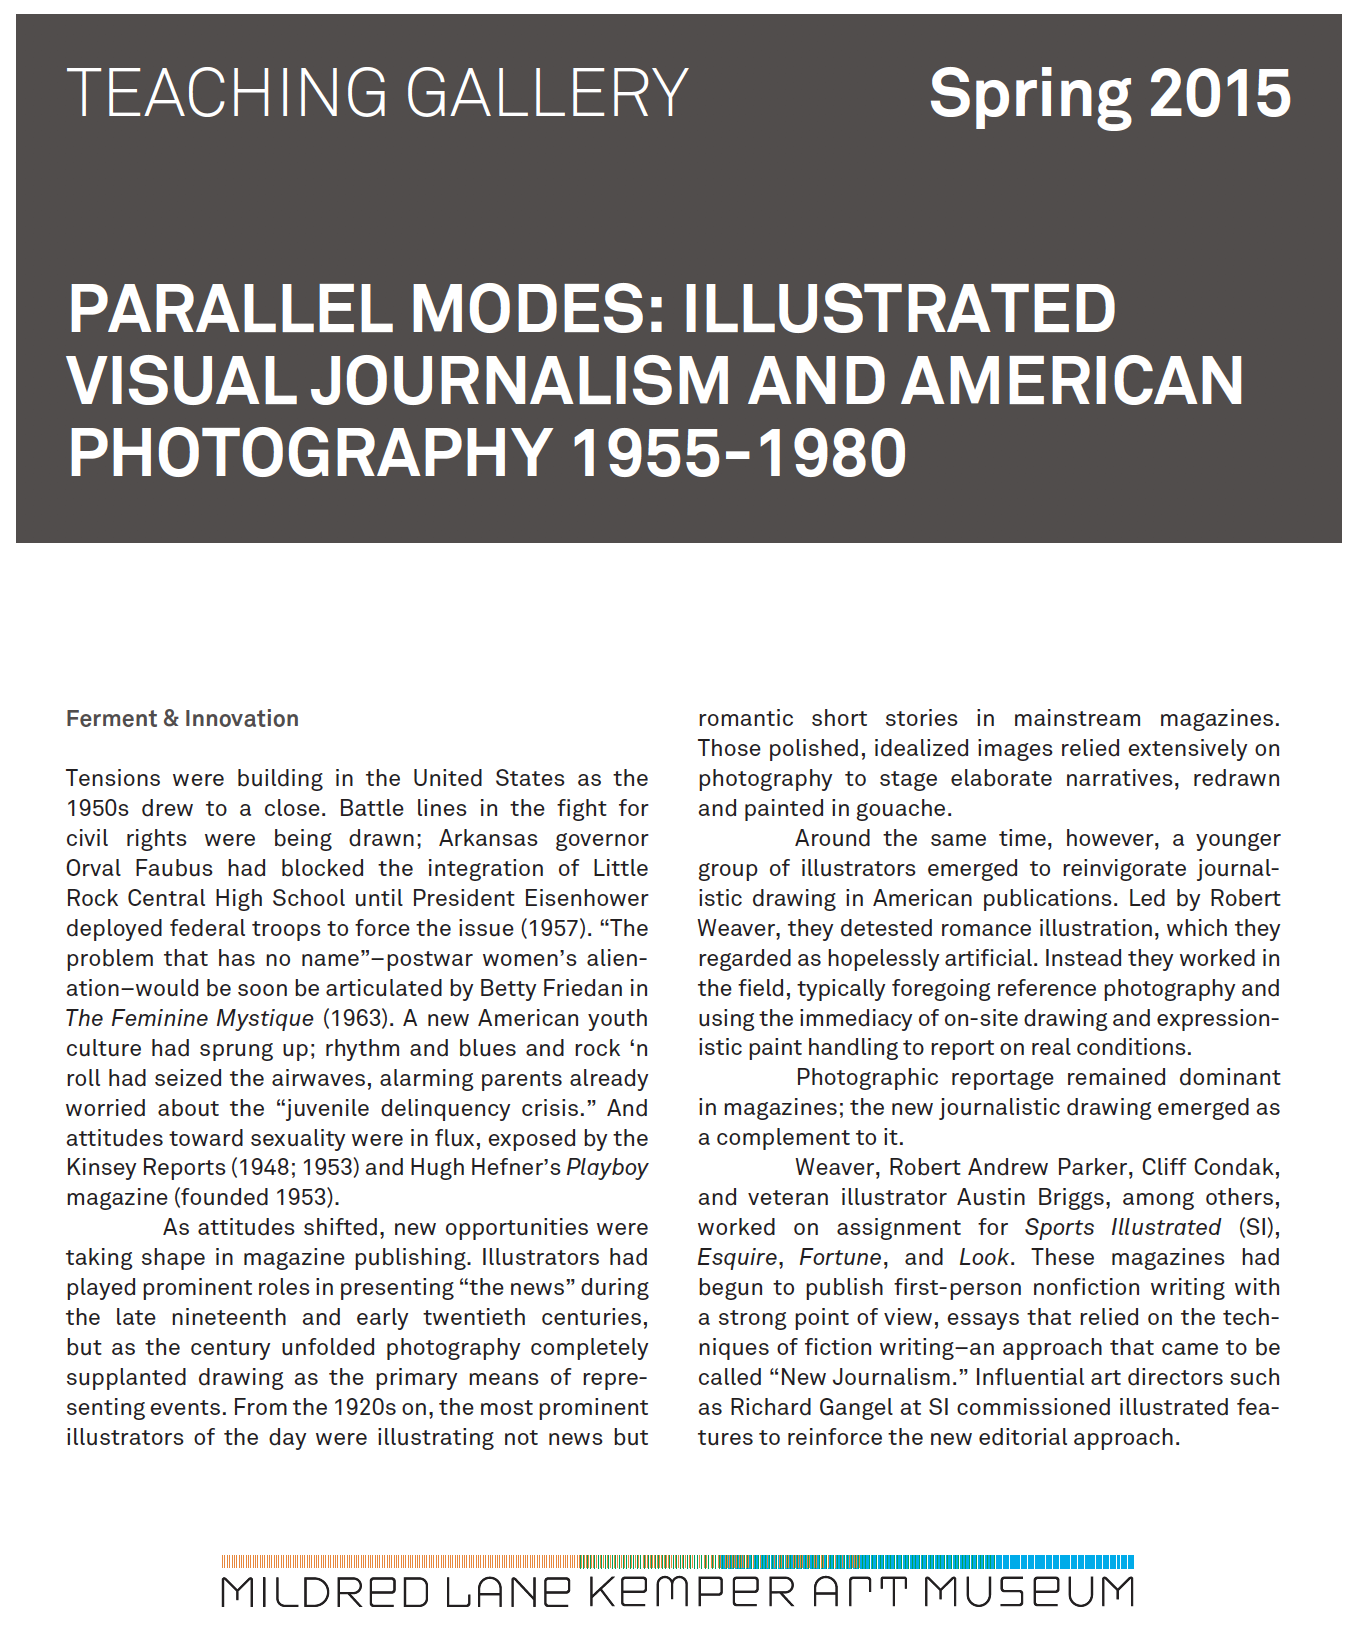 Exhibition Brochure,  Parallel Modes: Illustrated Visual Journalism and American Photography 1955-1980 . January-February 2015.